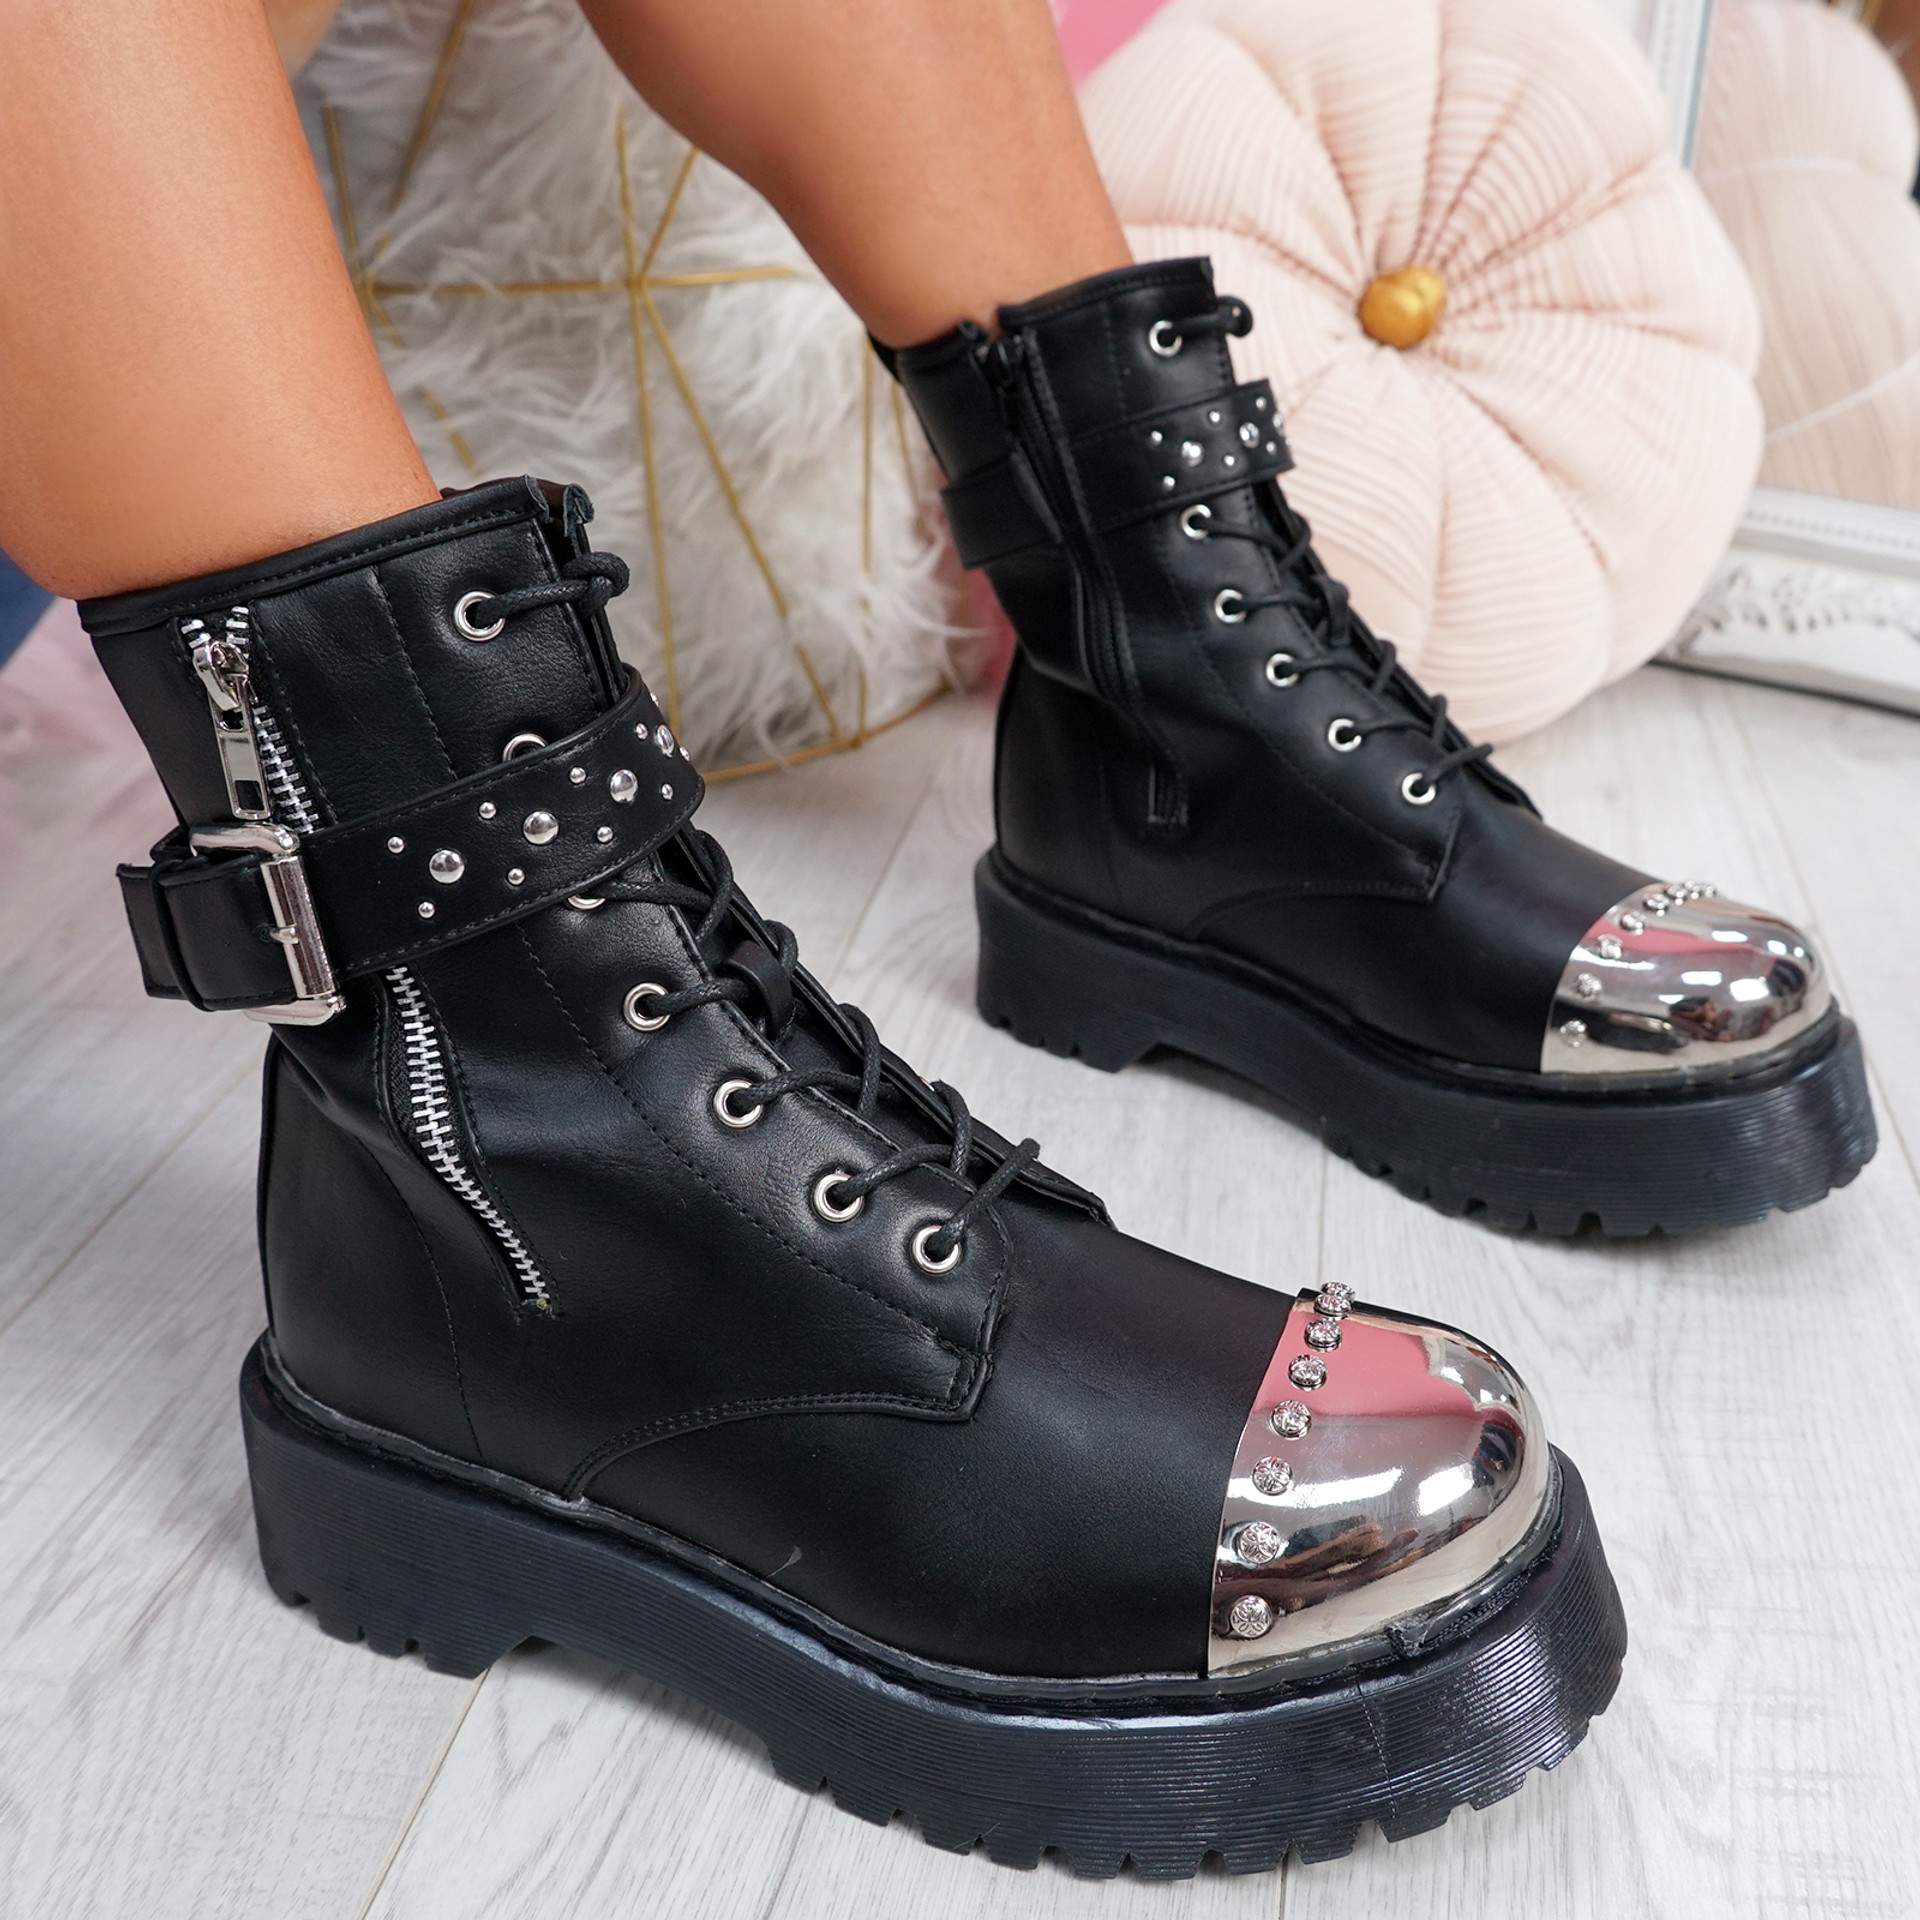 Pore Black Shiny Toe Ankle Boots